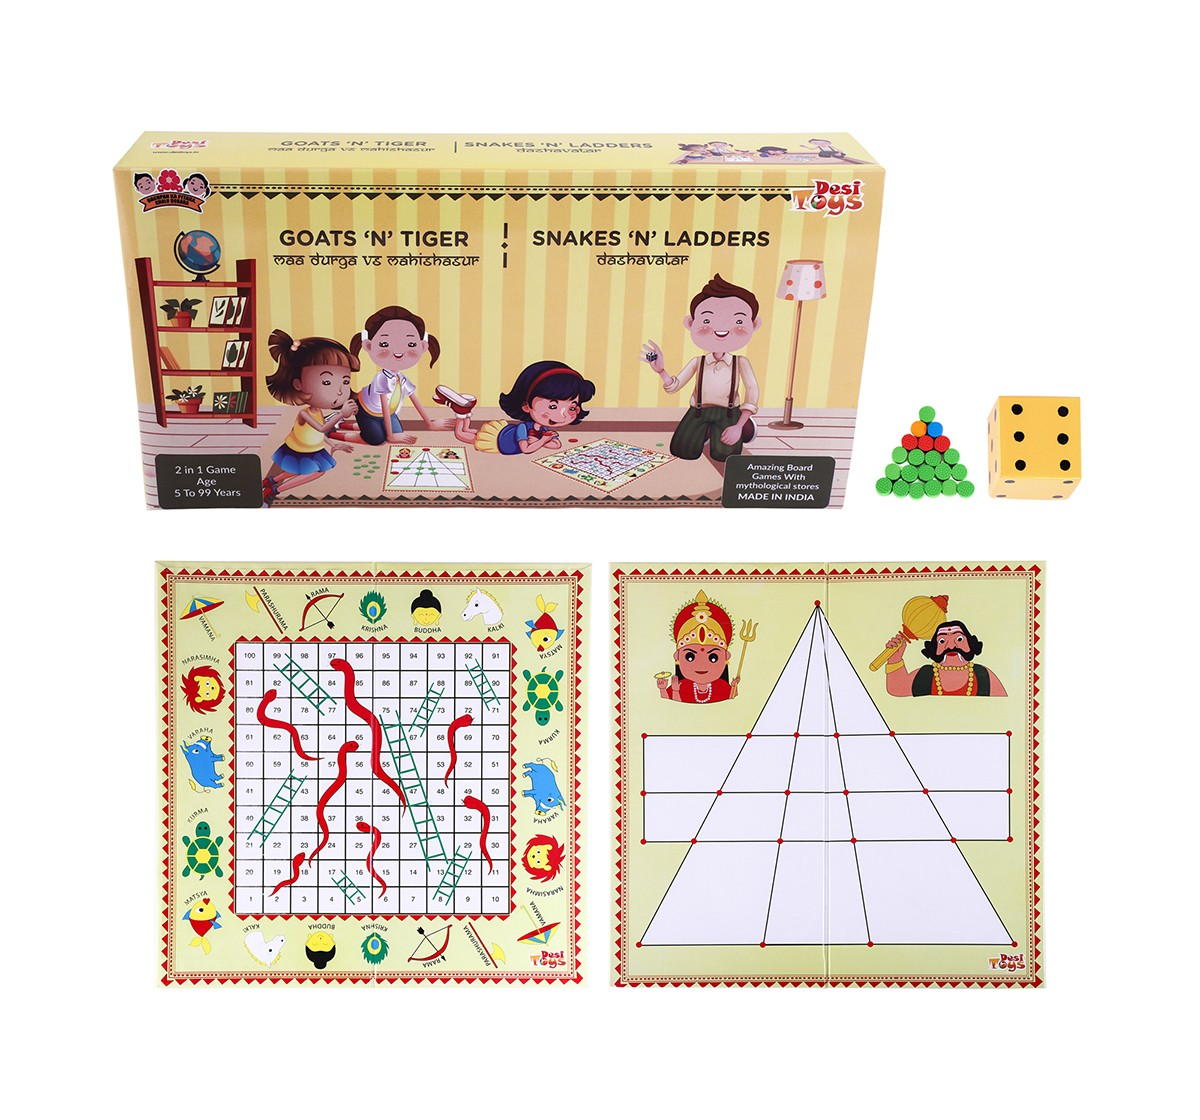 Desi Toys 2 In 1 Strategy Game Of Goats N Tigers & Snakes N Ladders Classic Games for Kids age 5Y+